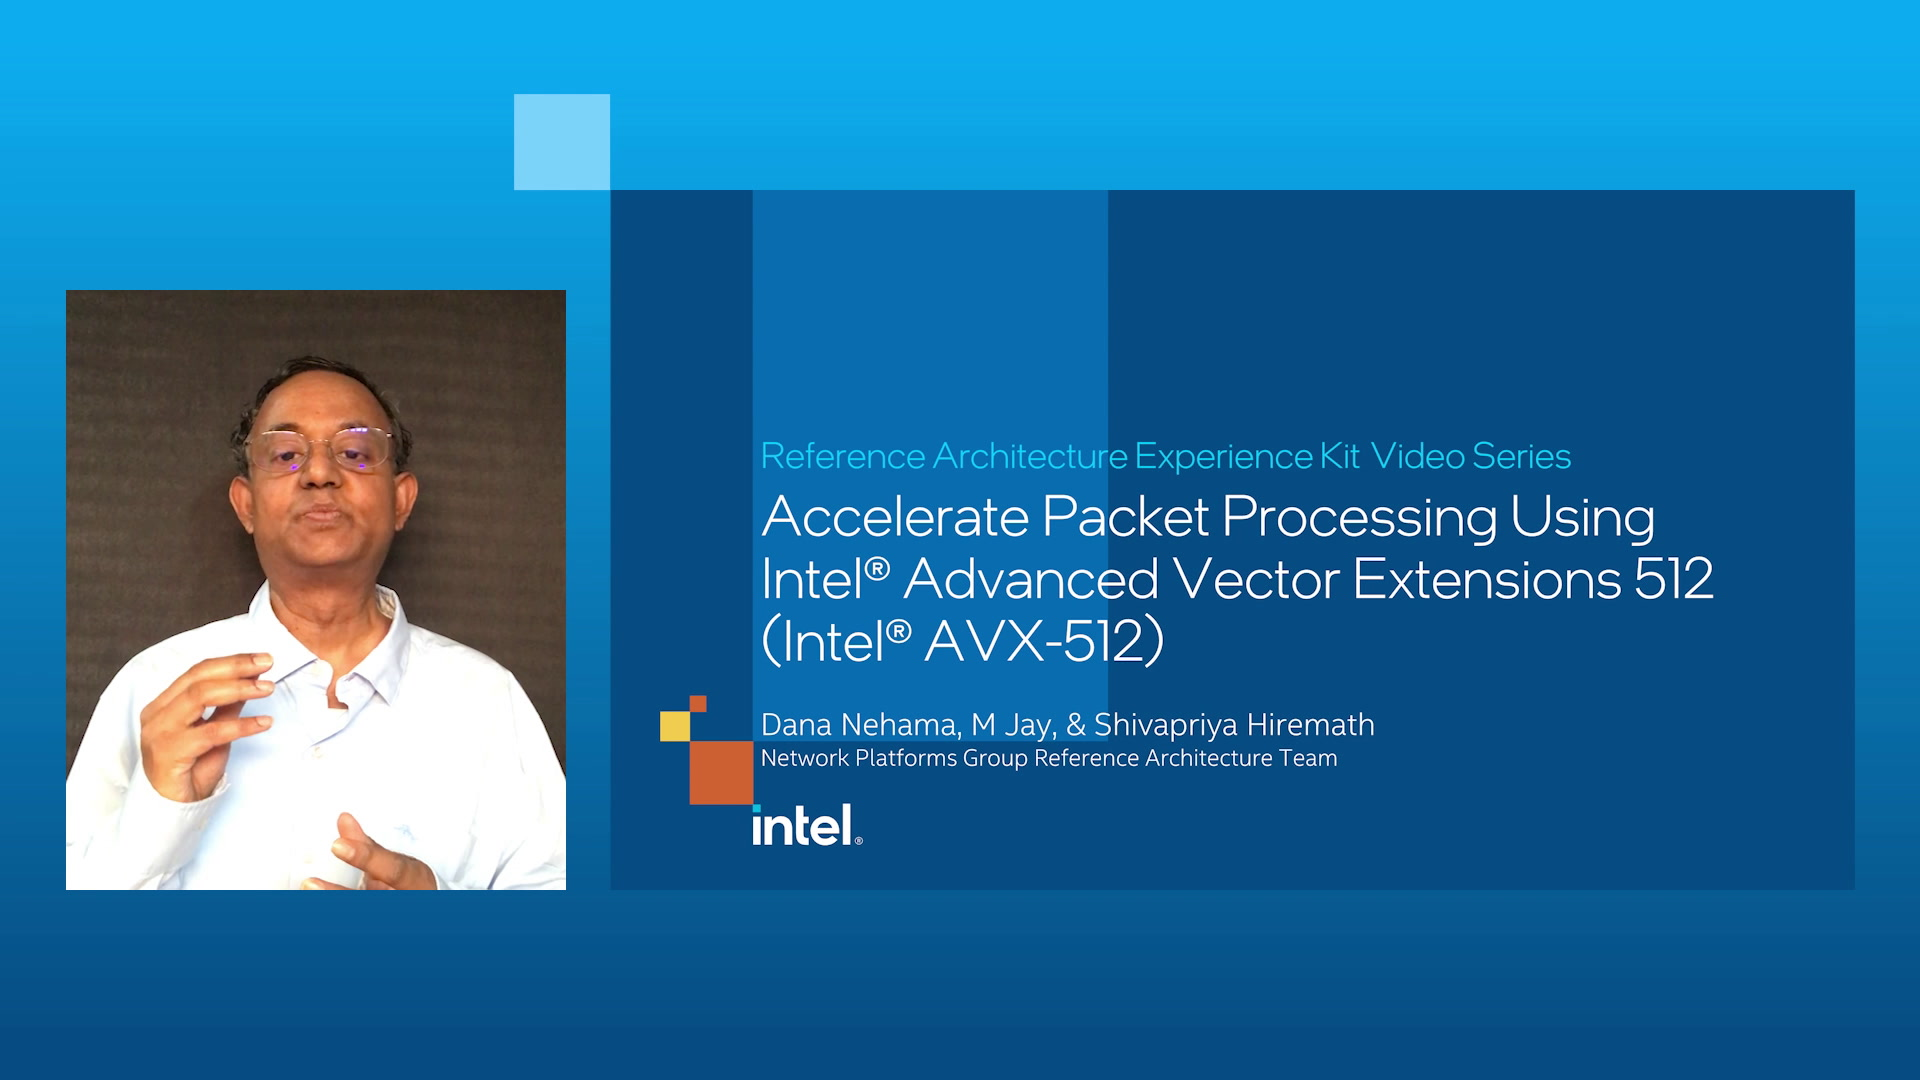 Chapter 1: Accelerate Packet Processing Using Intel® Advanced Vector Extensions 512 (Intel® AVX-512)